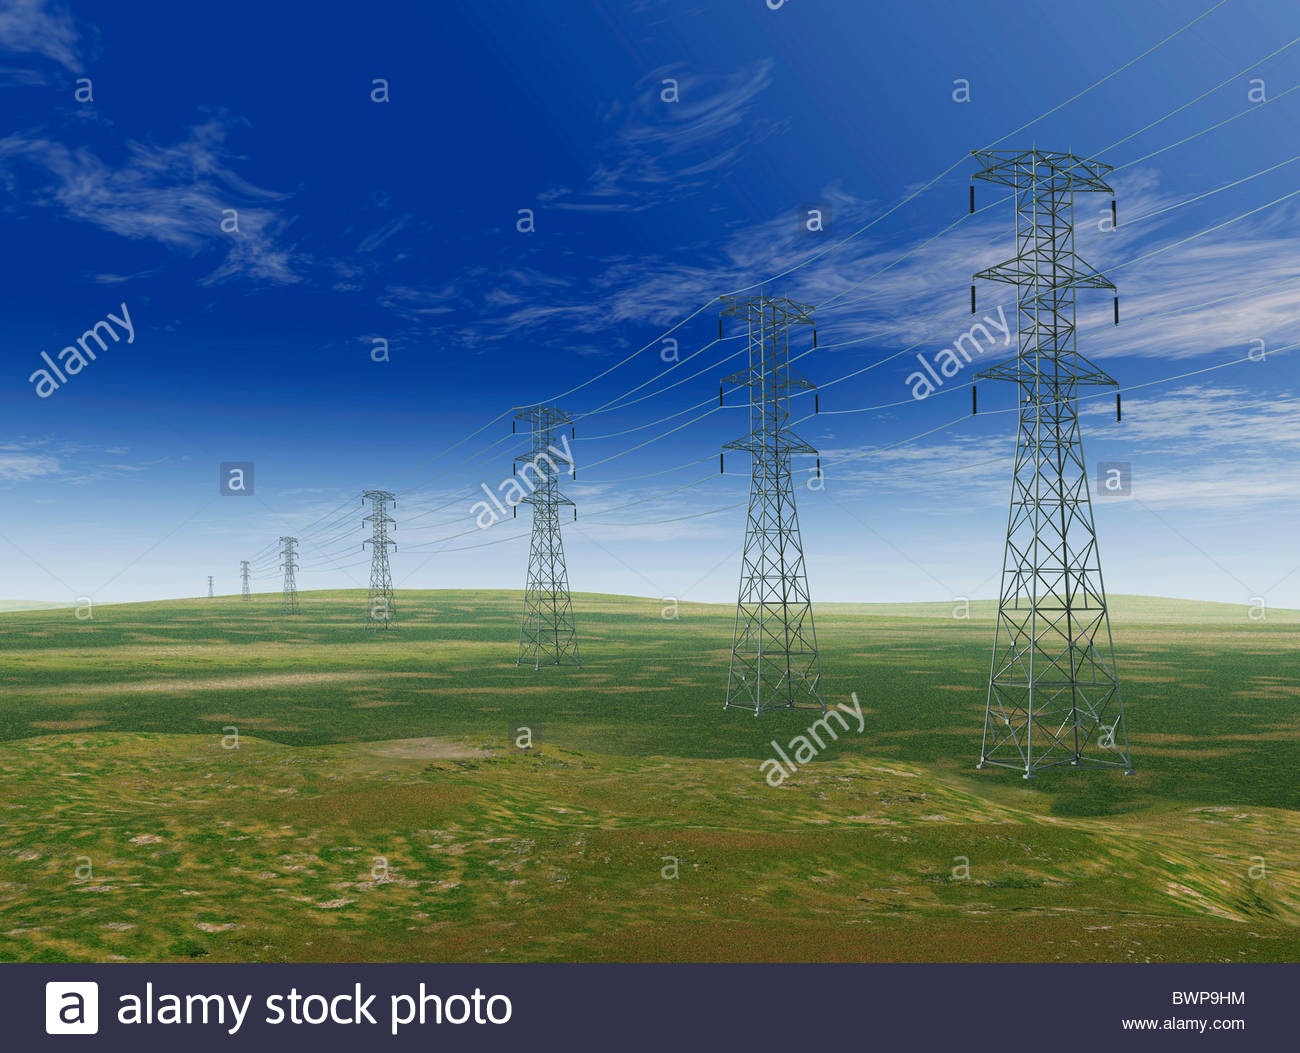 Electricity pylons in remote field - Stock Image